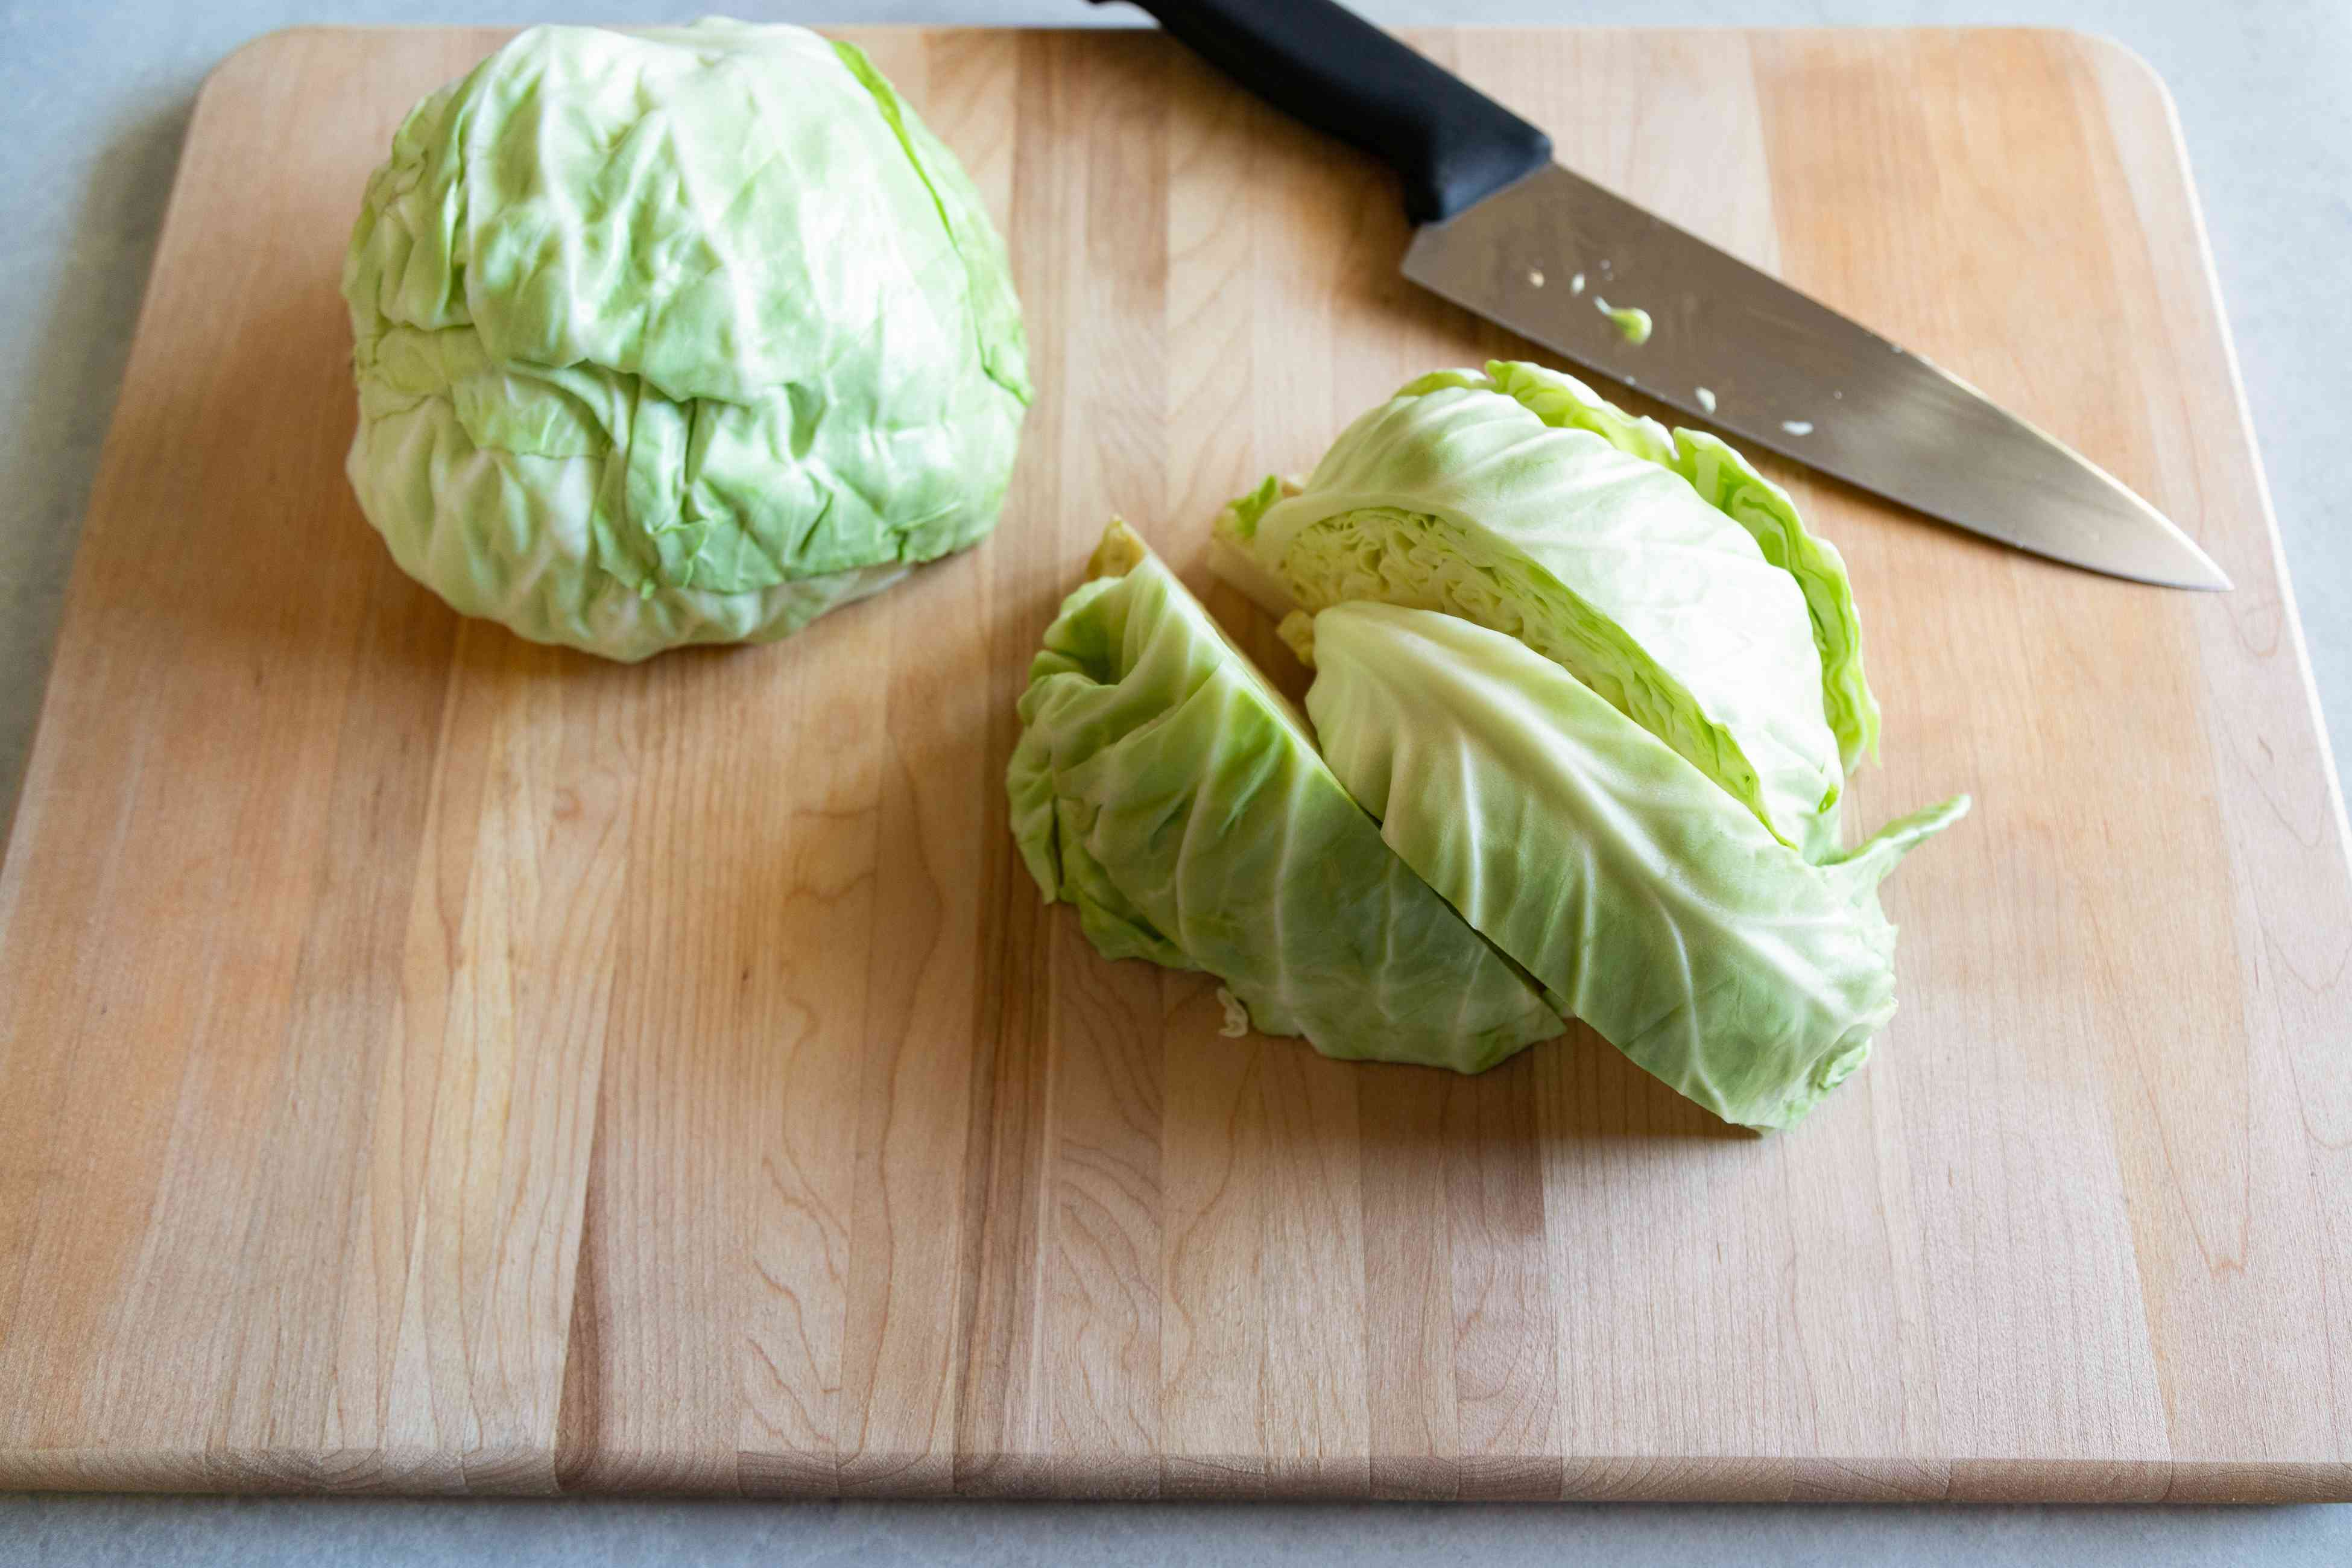 Chopping cabbage into wedges for grilled cabbage with peanut satay sauce.